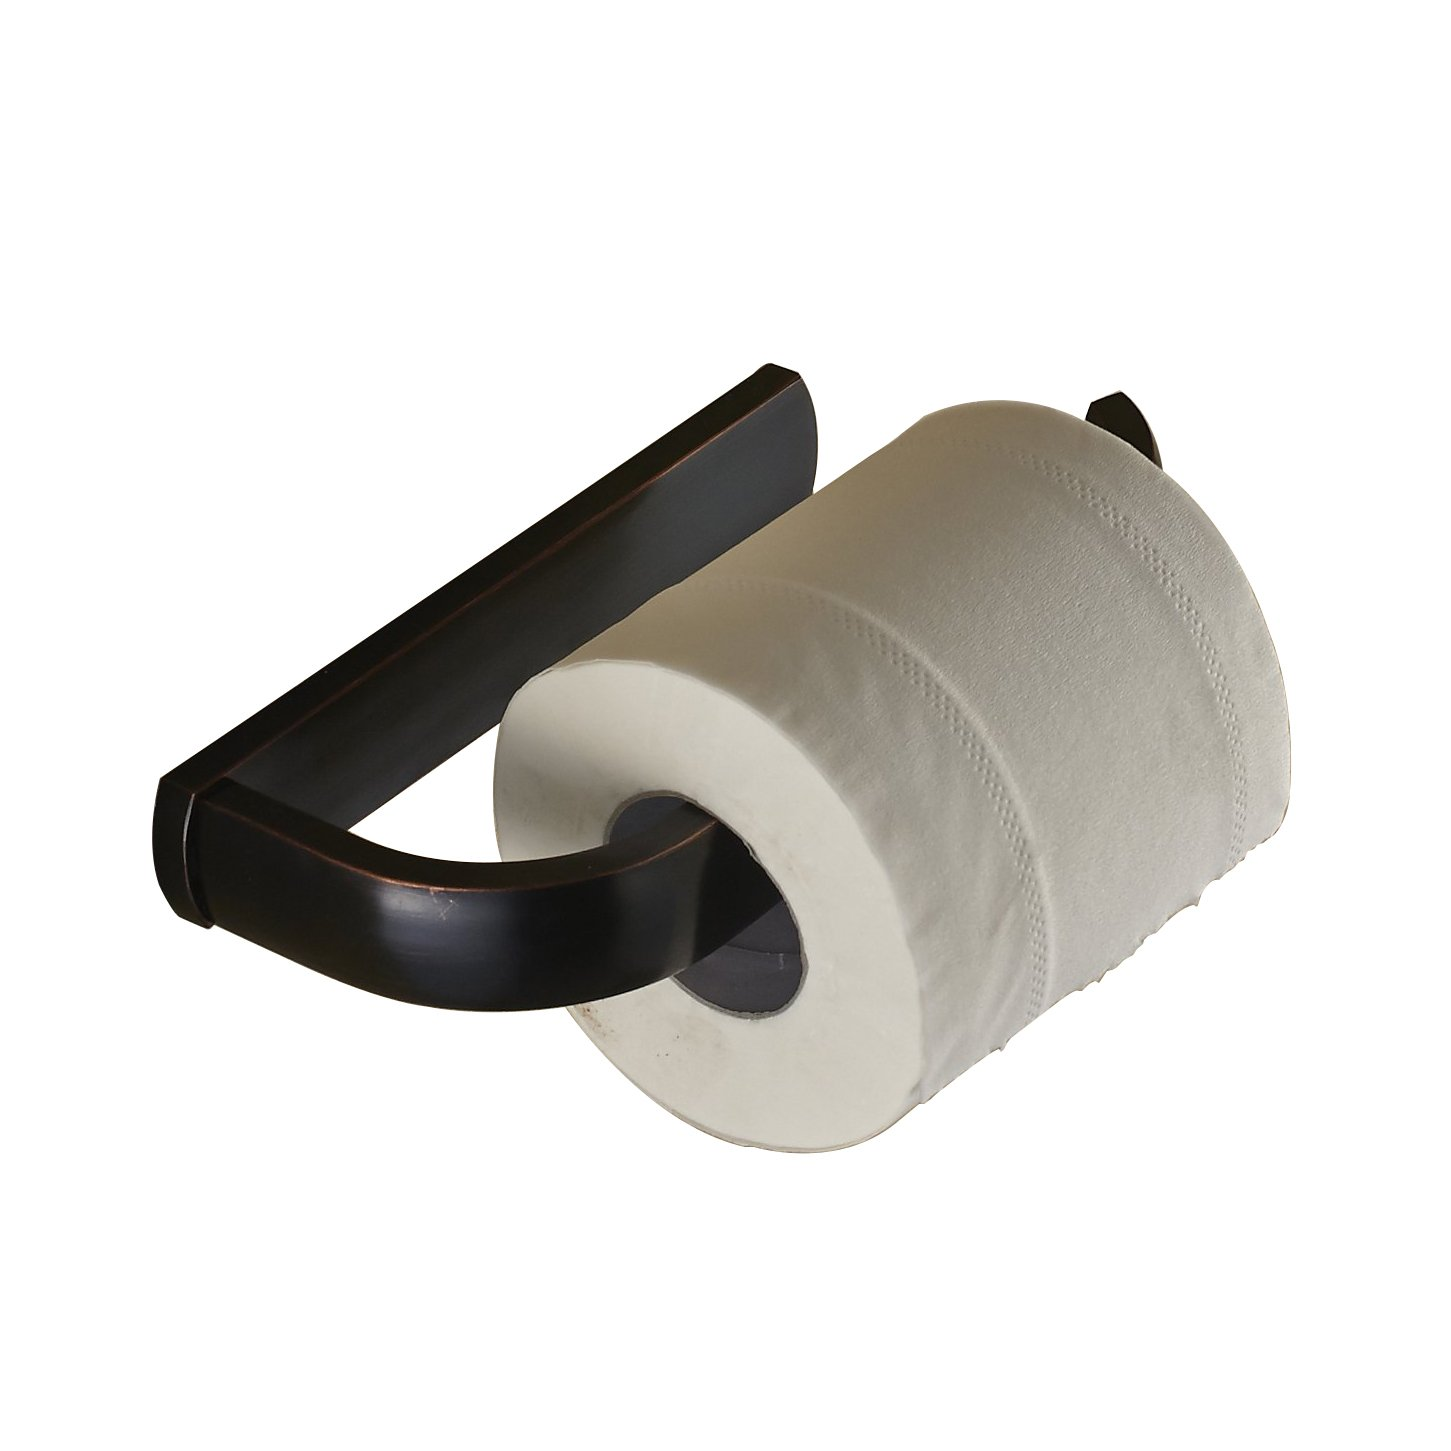 Rozin Oil Rubbed Bronze Toilet Paper Holder Wall Mounted